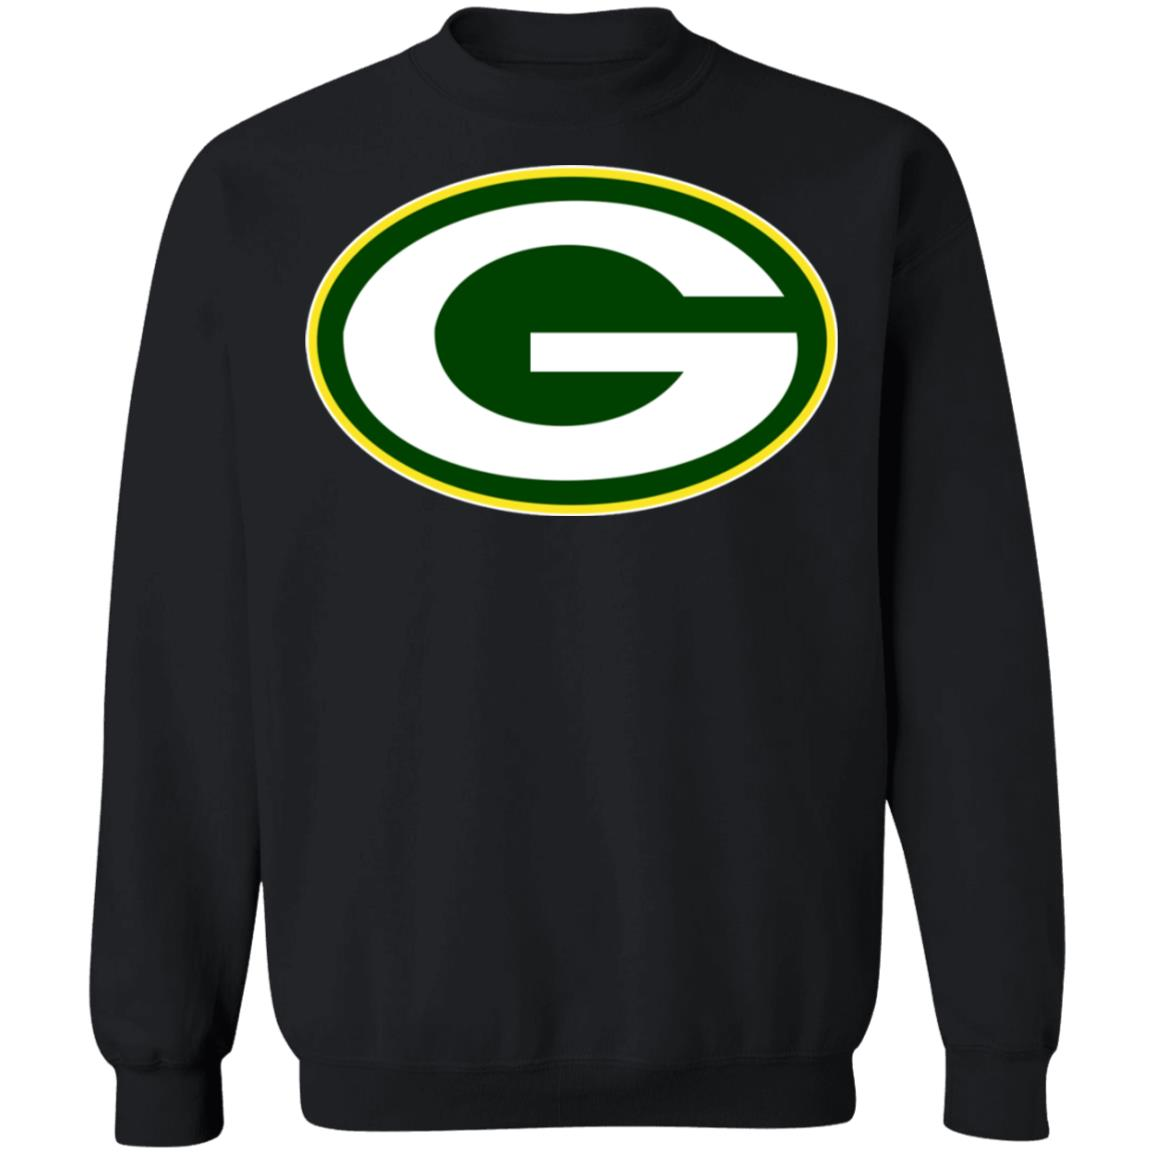 Nfl Green Bay Packers Chicago Bears Atlanta Falcon Football Pullover Sweatshirt  8 oz.